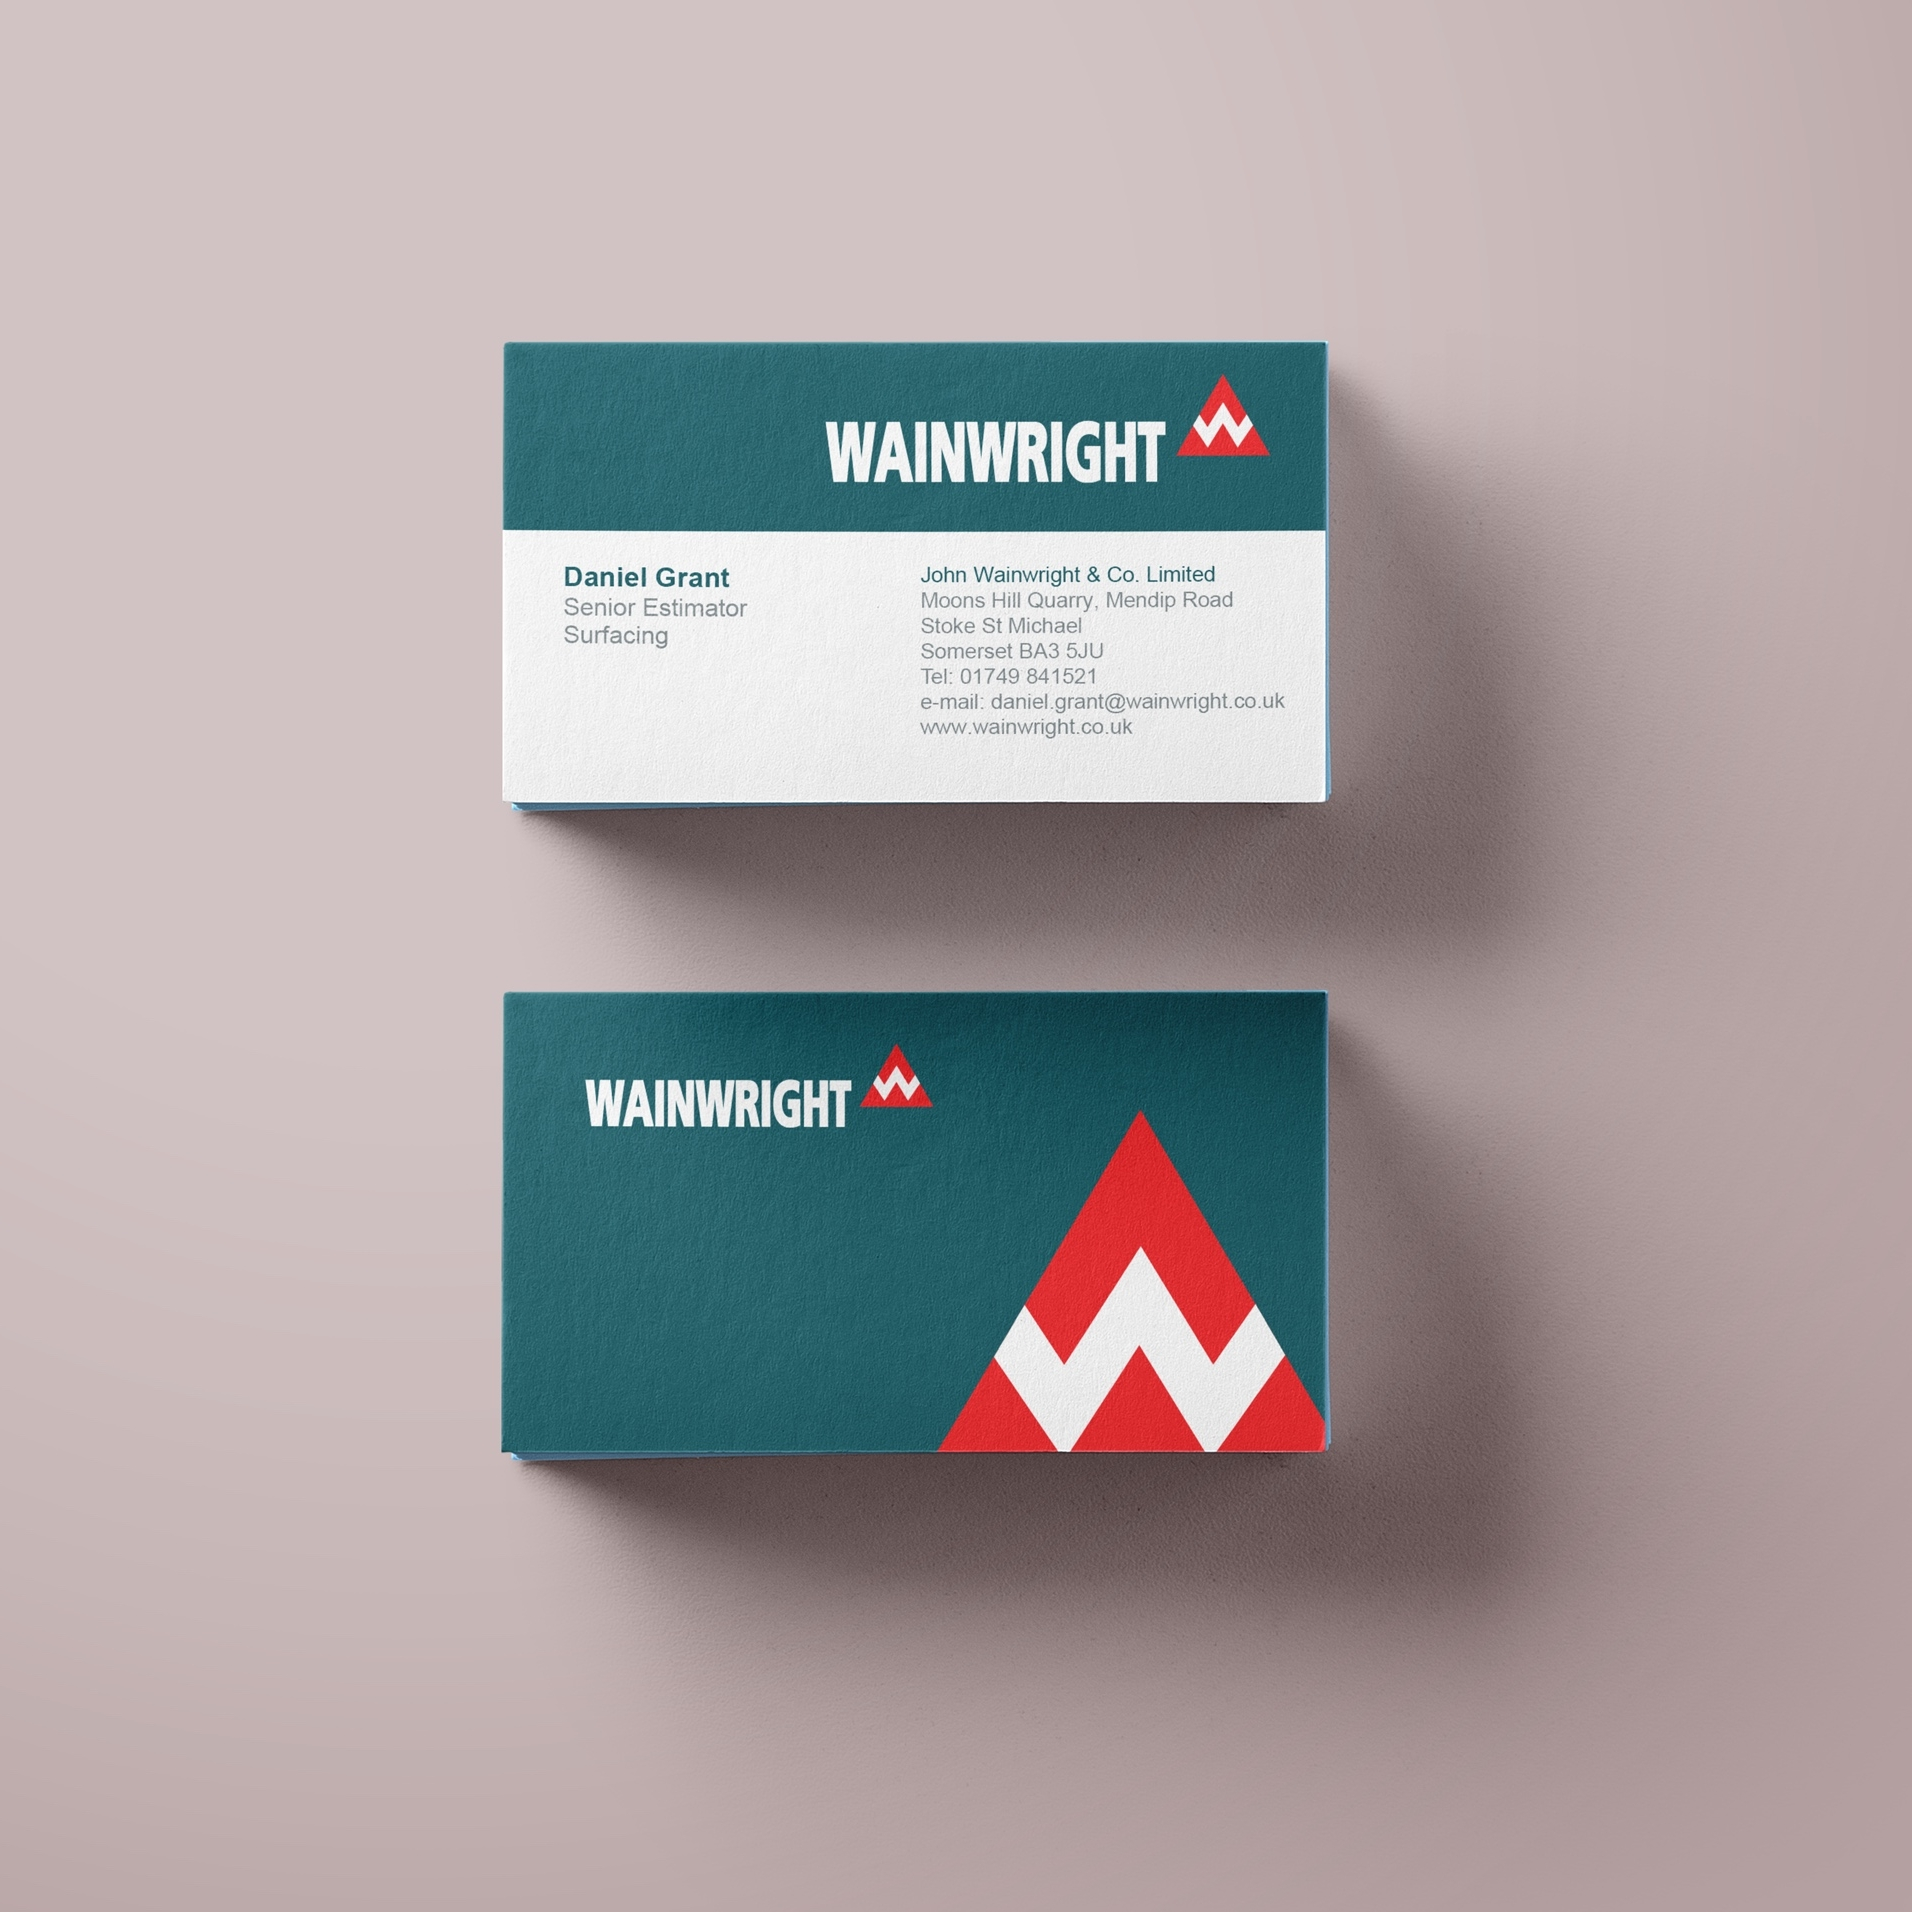 13-Wainwright-Quarry-Graphic-Design-Somerset-Photography-manufacturing-London copy.jpg